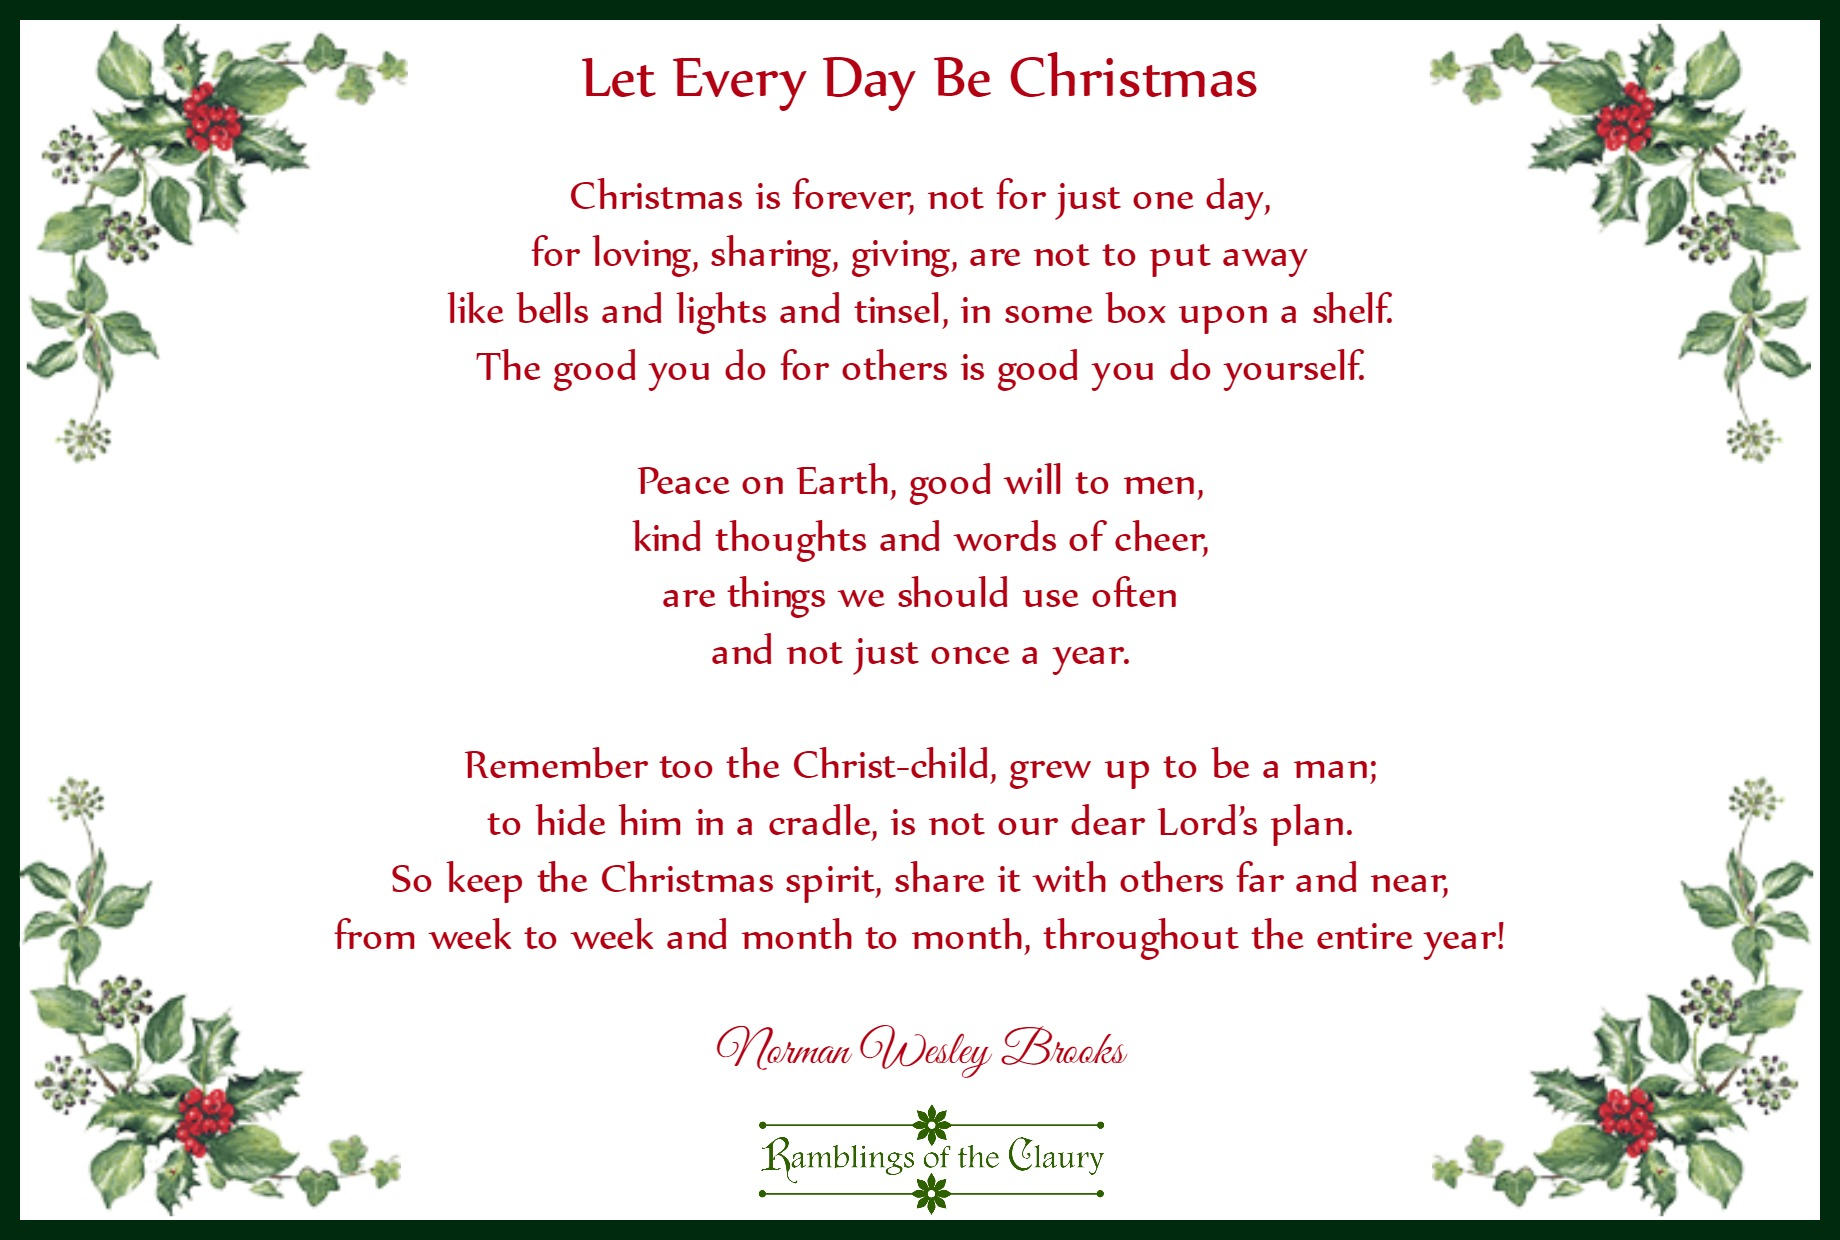 Let Every Day Be Christmas